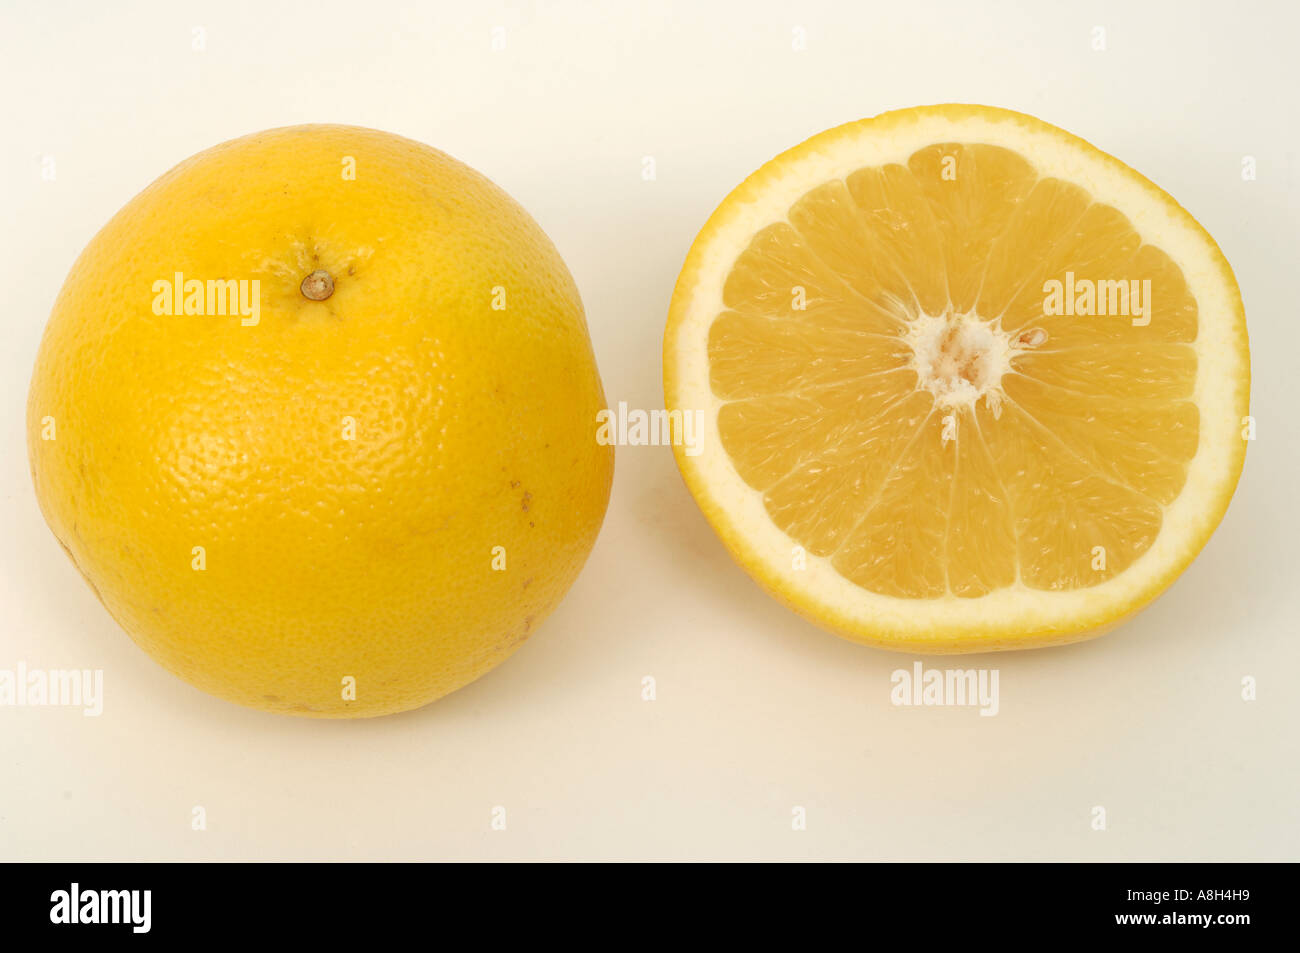 Yellow grapefruit supermarket bought and in normal shop condition - Stock Image